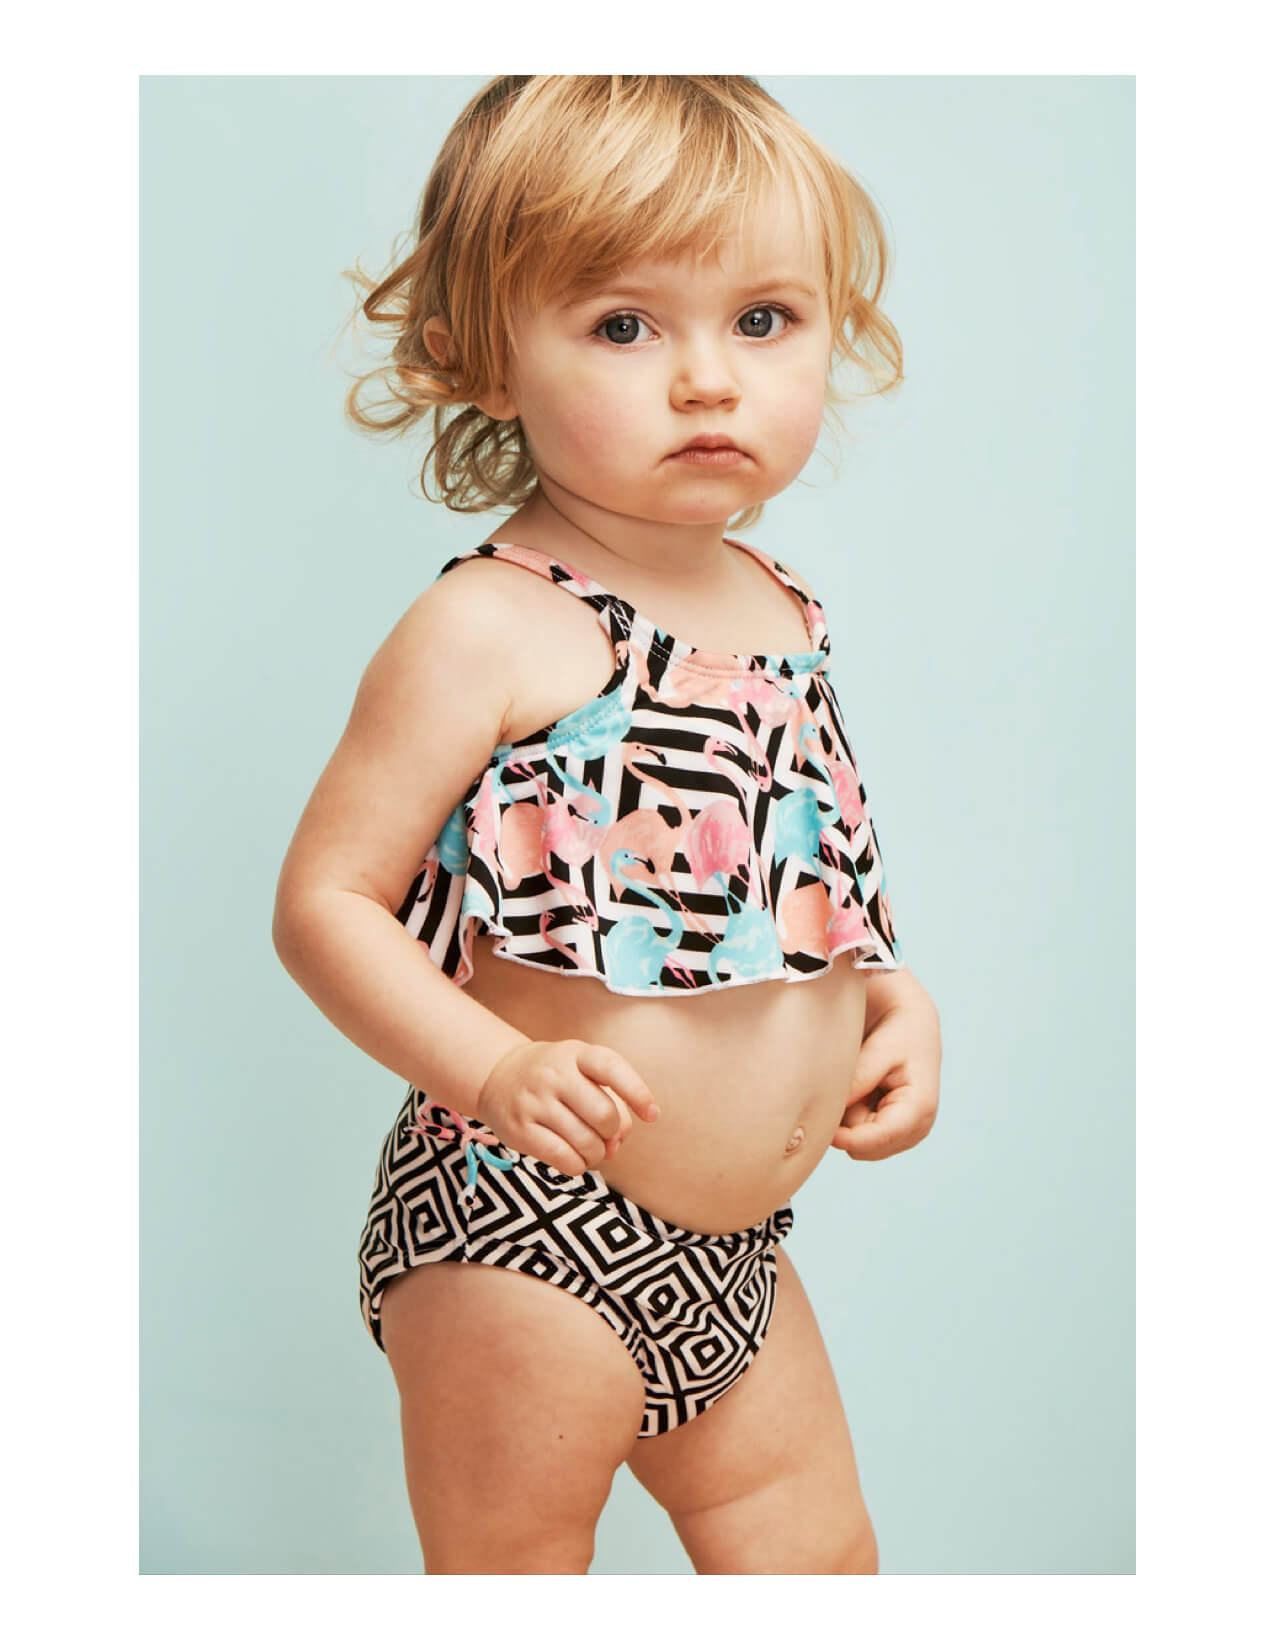 Vika Pobeda - Baby Photography Nordstrom Kids Summer Campaign